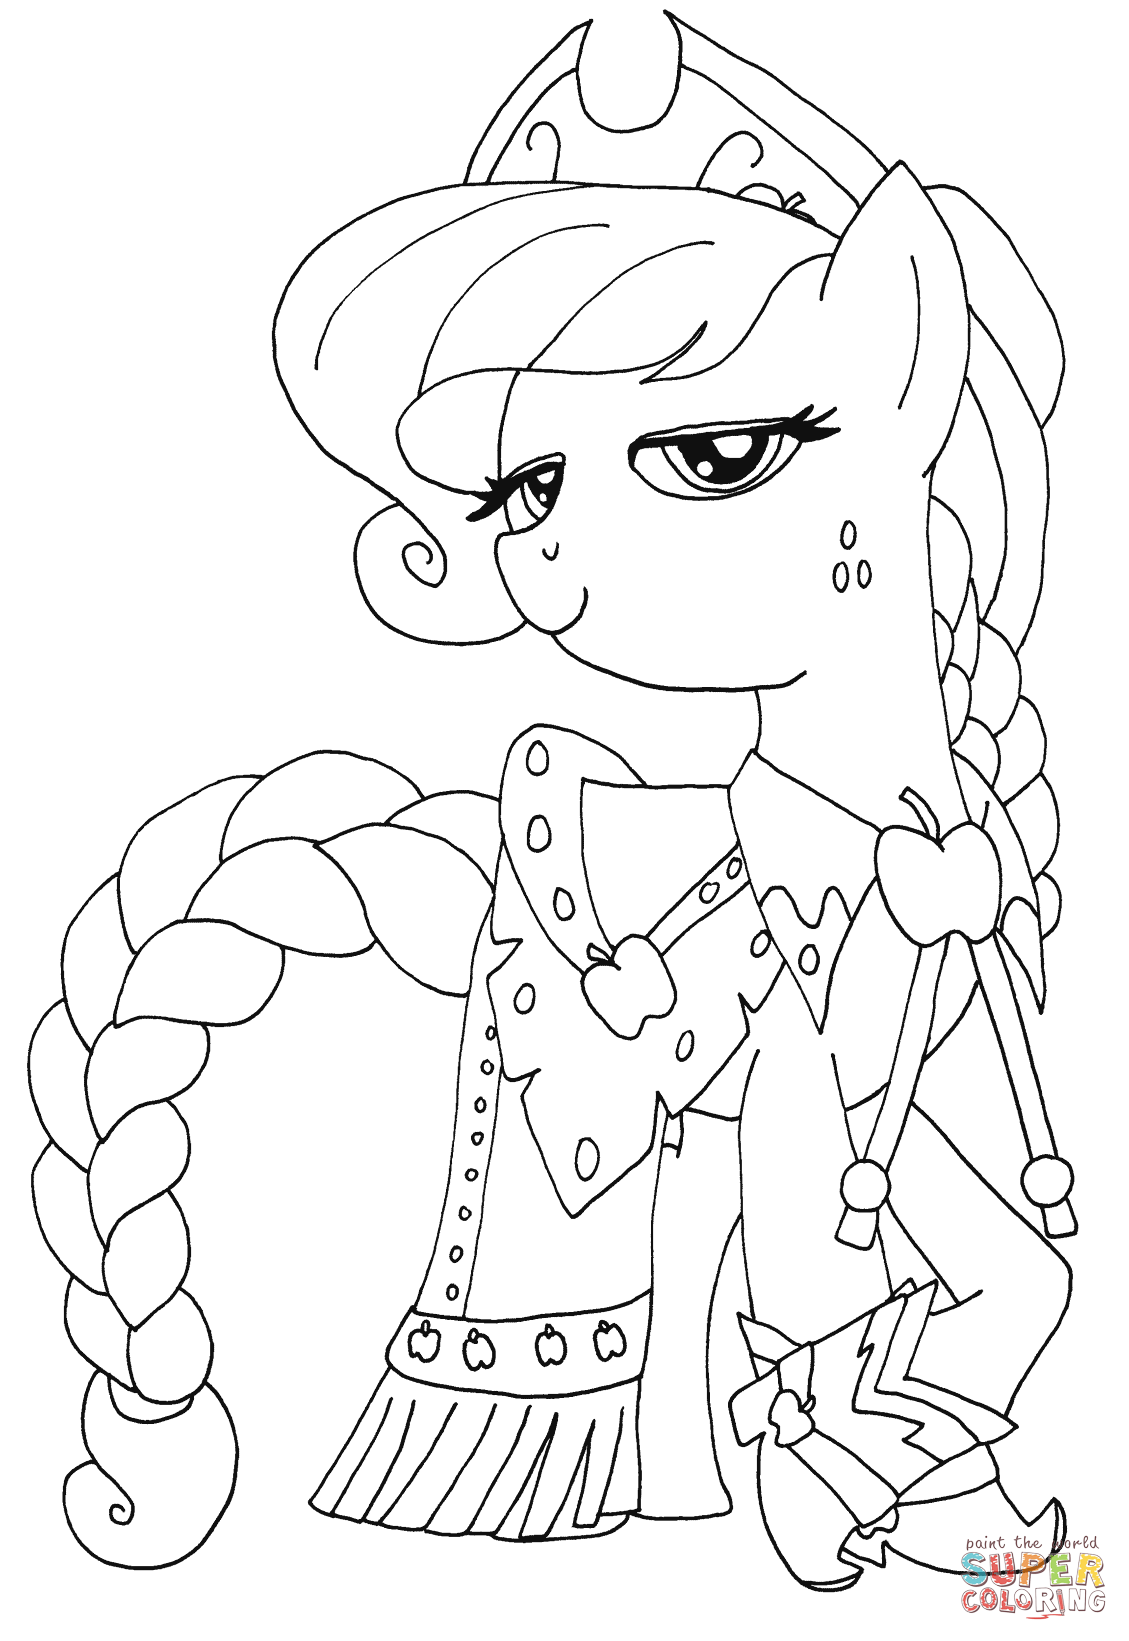 Princess Applejack From My Little Pony